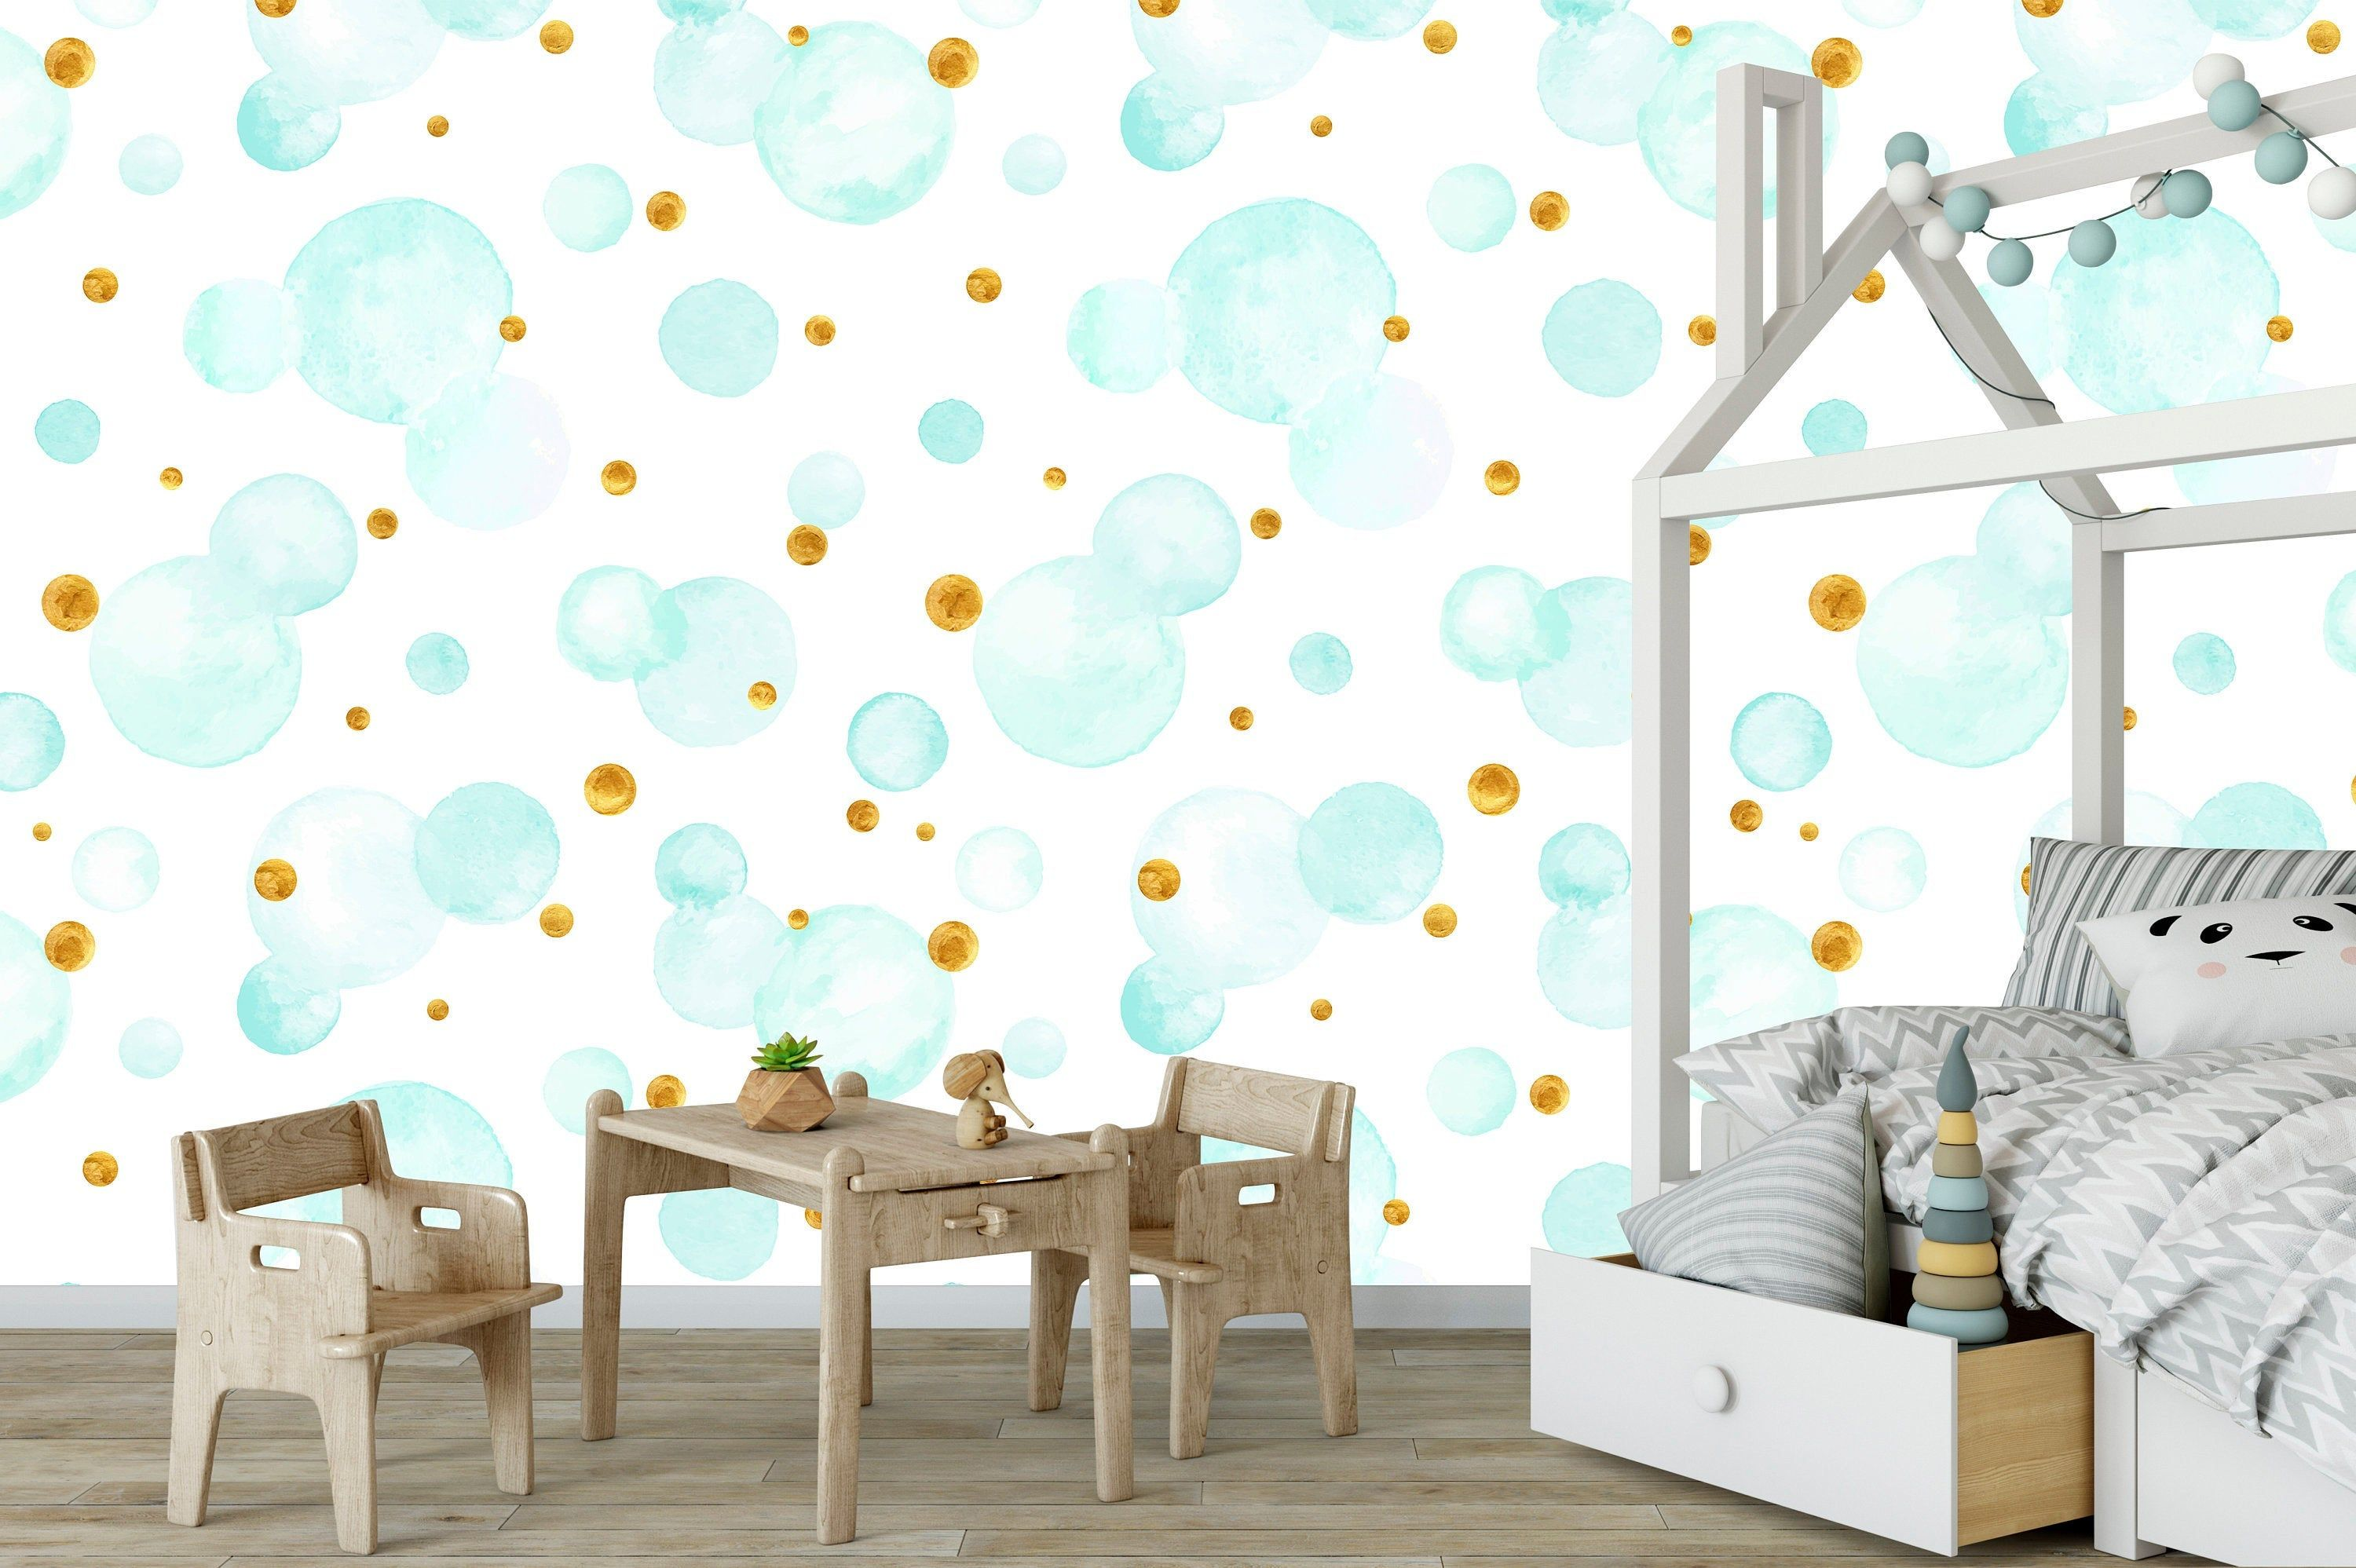 Baby Blue Soap Bubble Nursery Wallpapers Kid S Room Interior Self Adhesive Wallpapers Kids Interior Room Nursery Wallpaper Shop Wallpaper